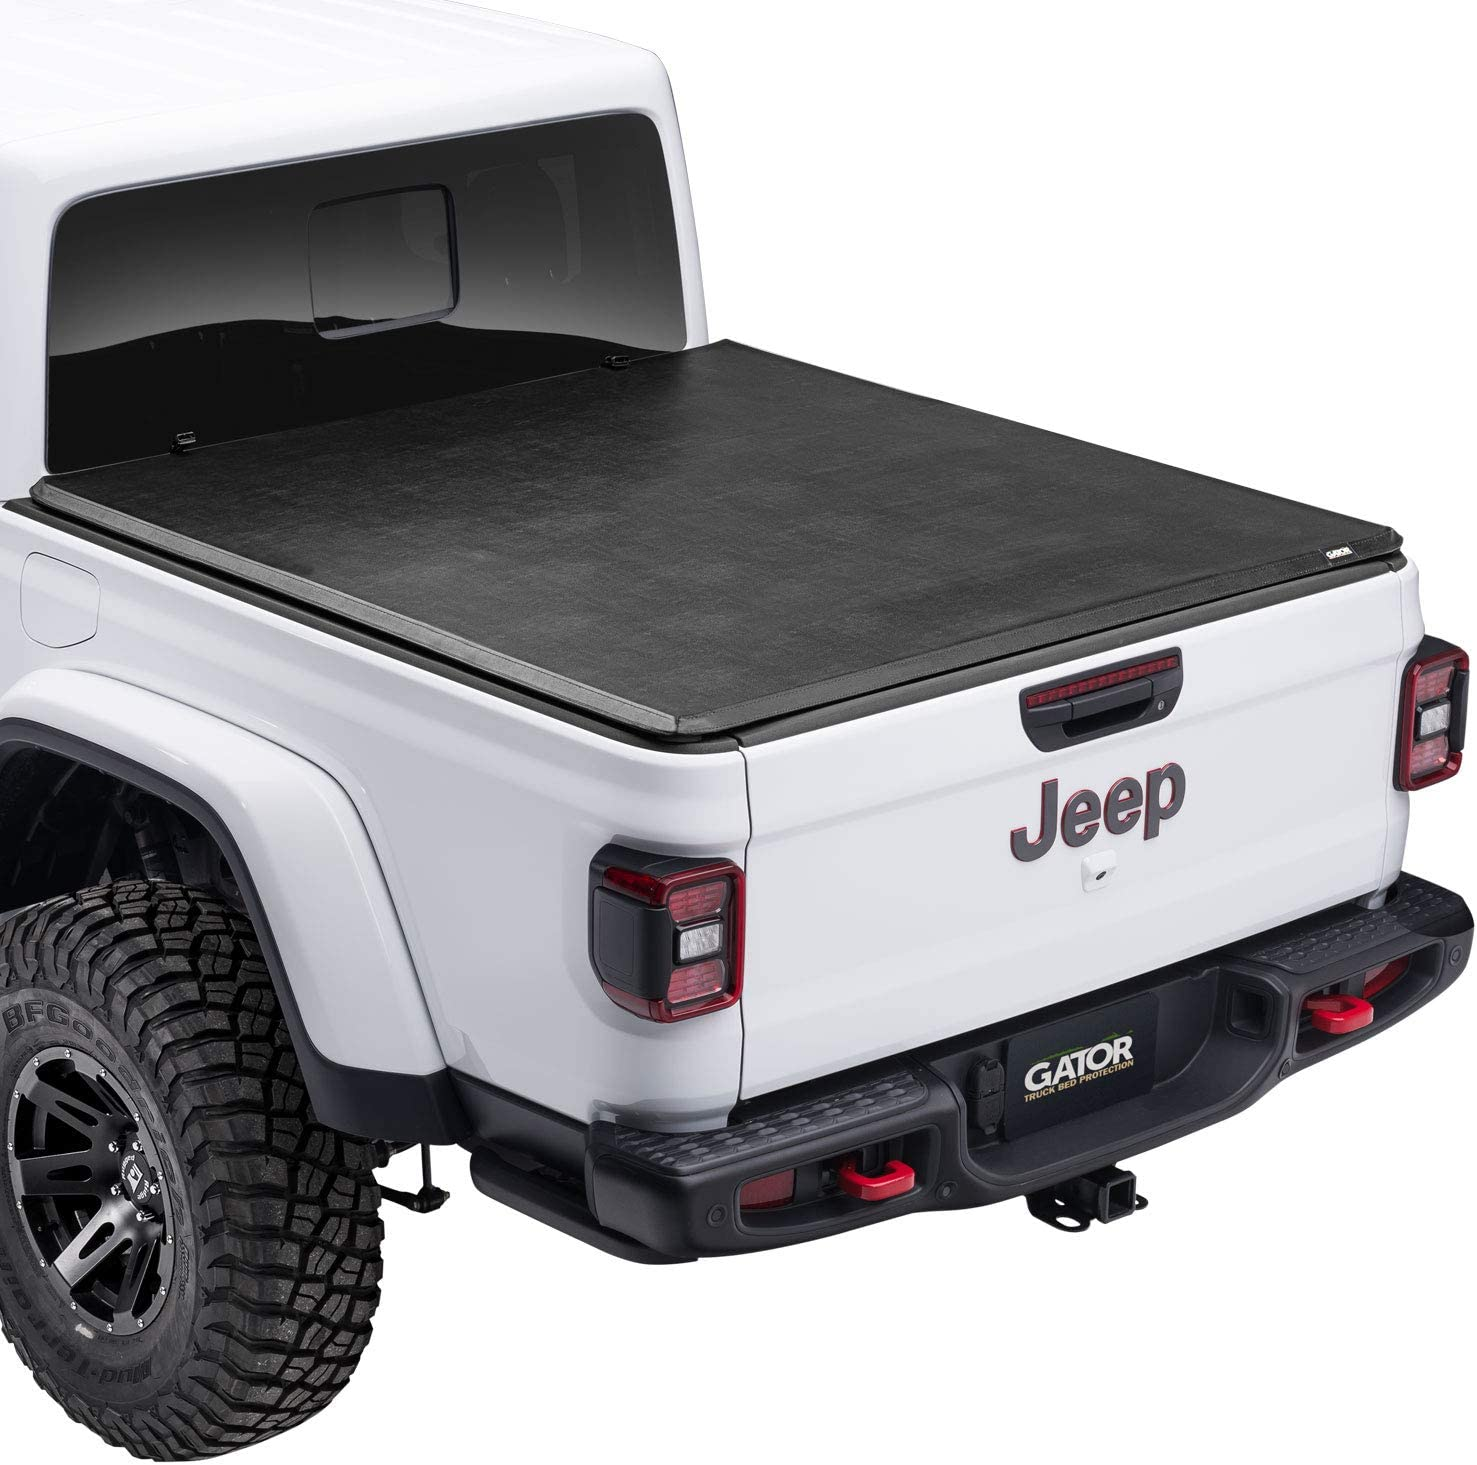 Amazon Com Gator Etx Soft Tri Fold Truck Bed Tonneau Cover 59701 Fits 2020 Jeep Gladiator Jt W O Track Rail 5 Bed Made In The Usa Automotive